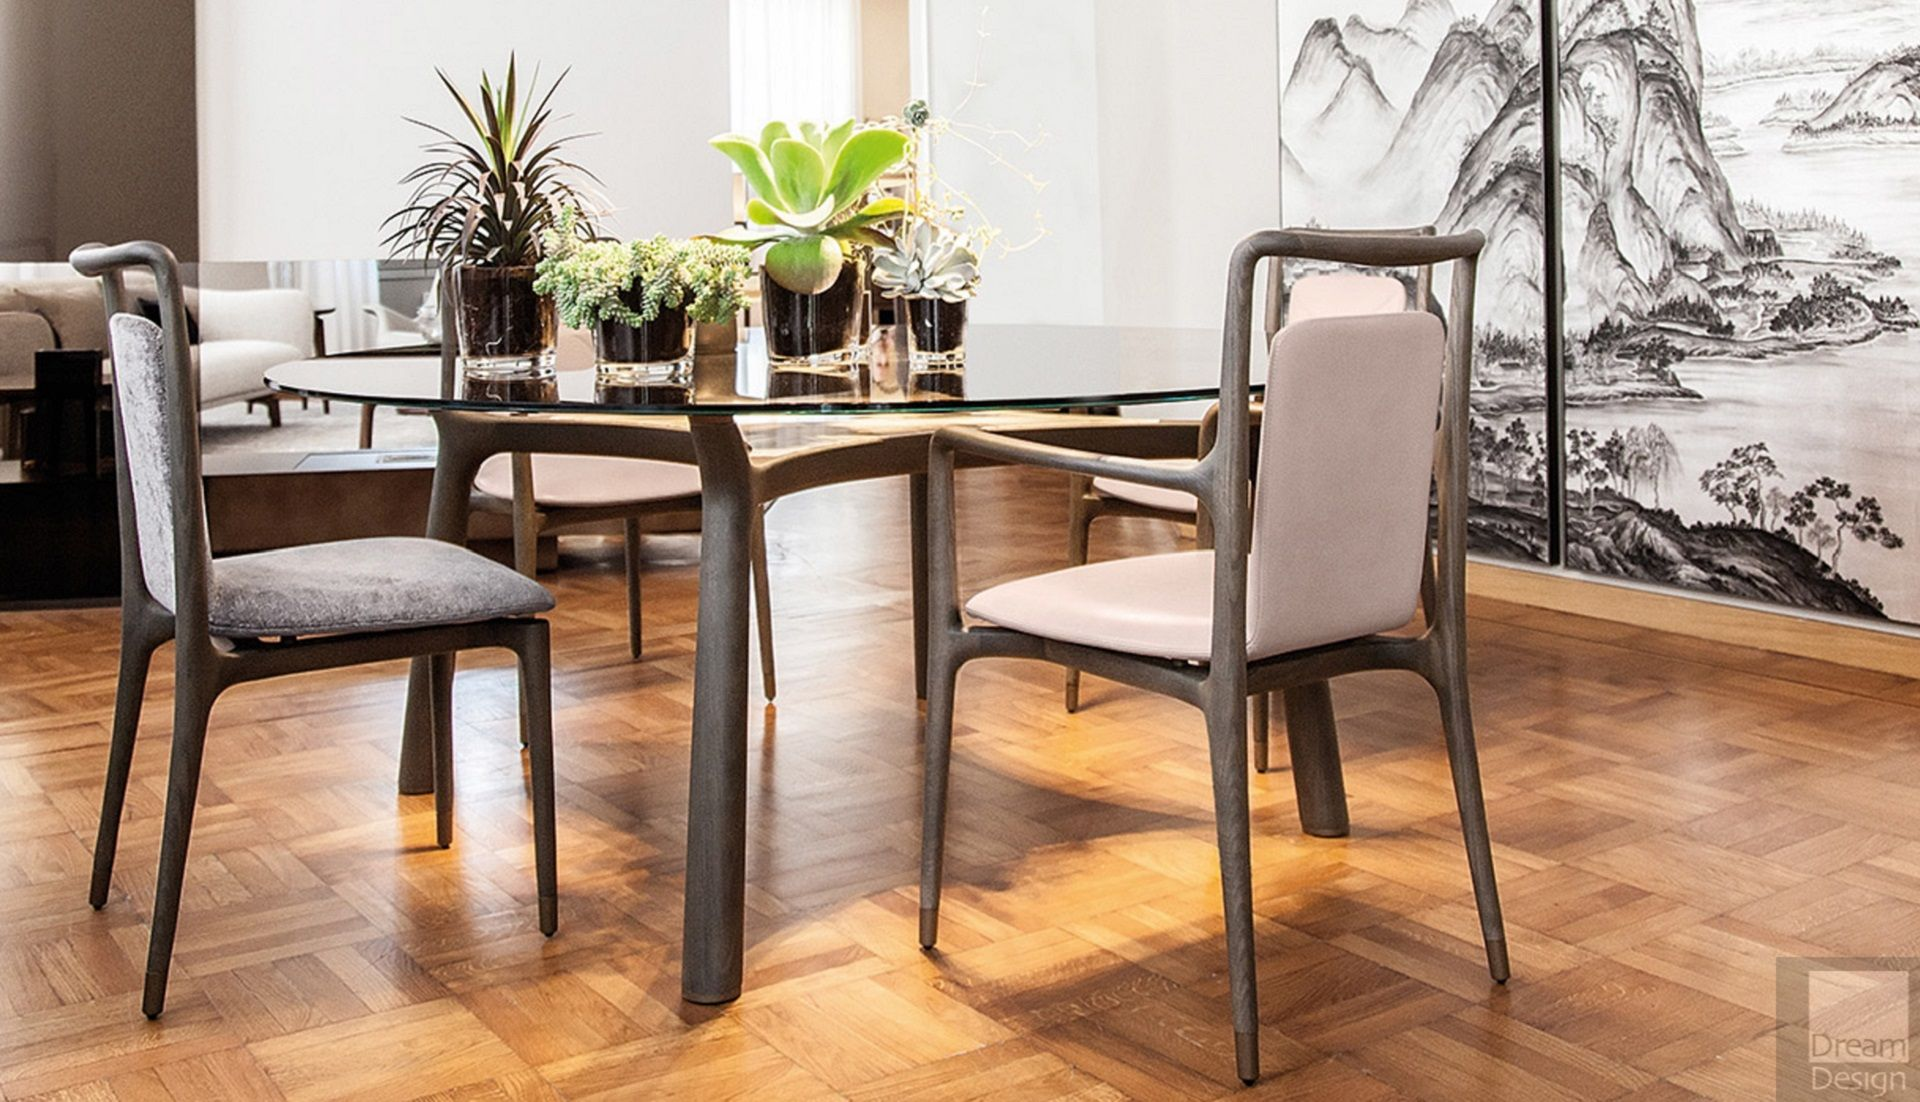 Ibla Chair Chair, Dining chairs, Luxury interior